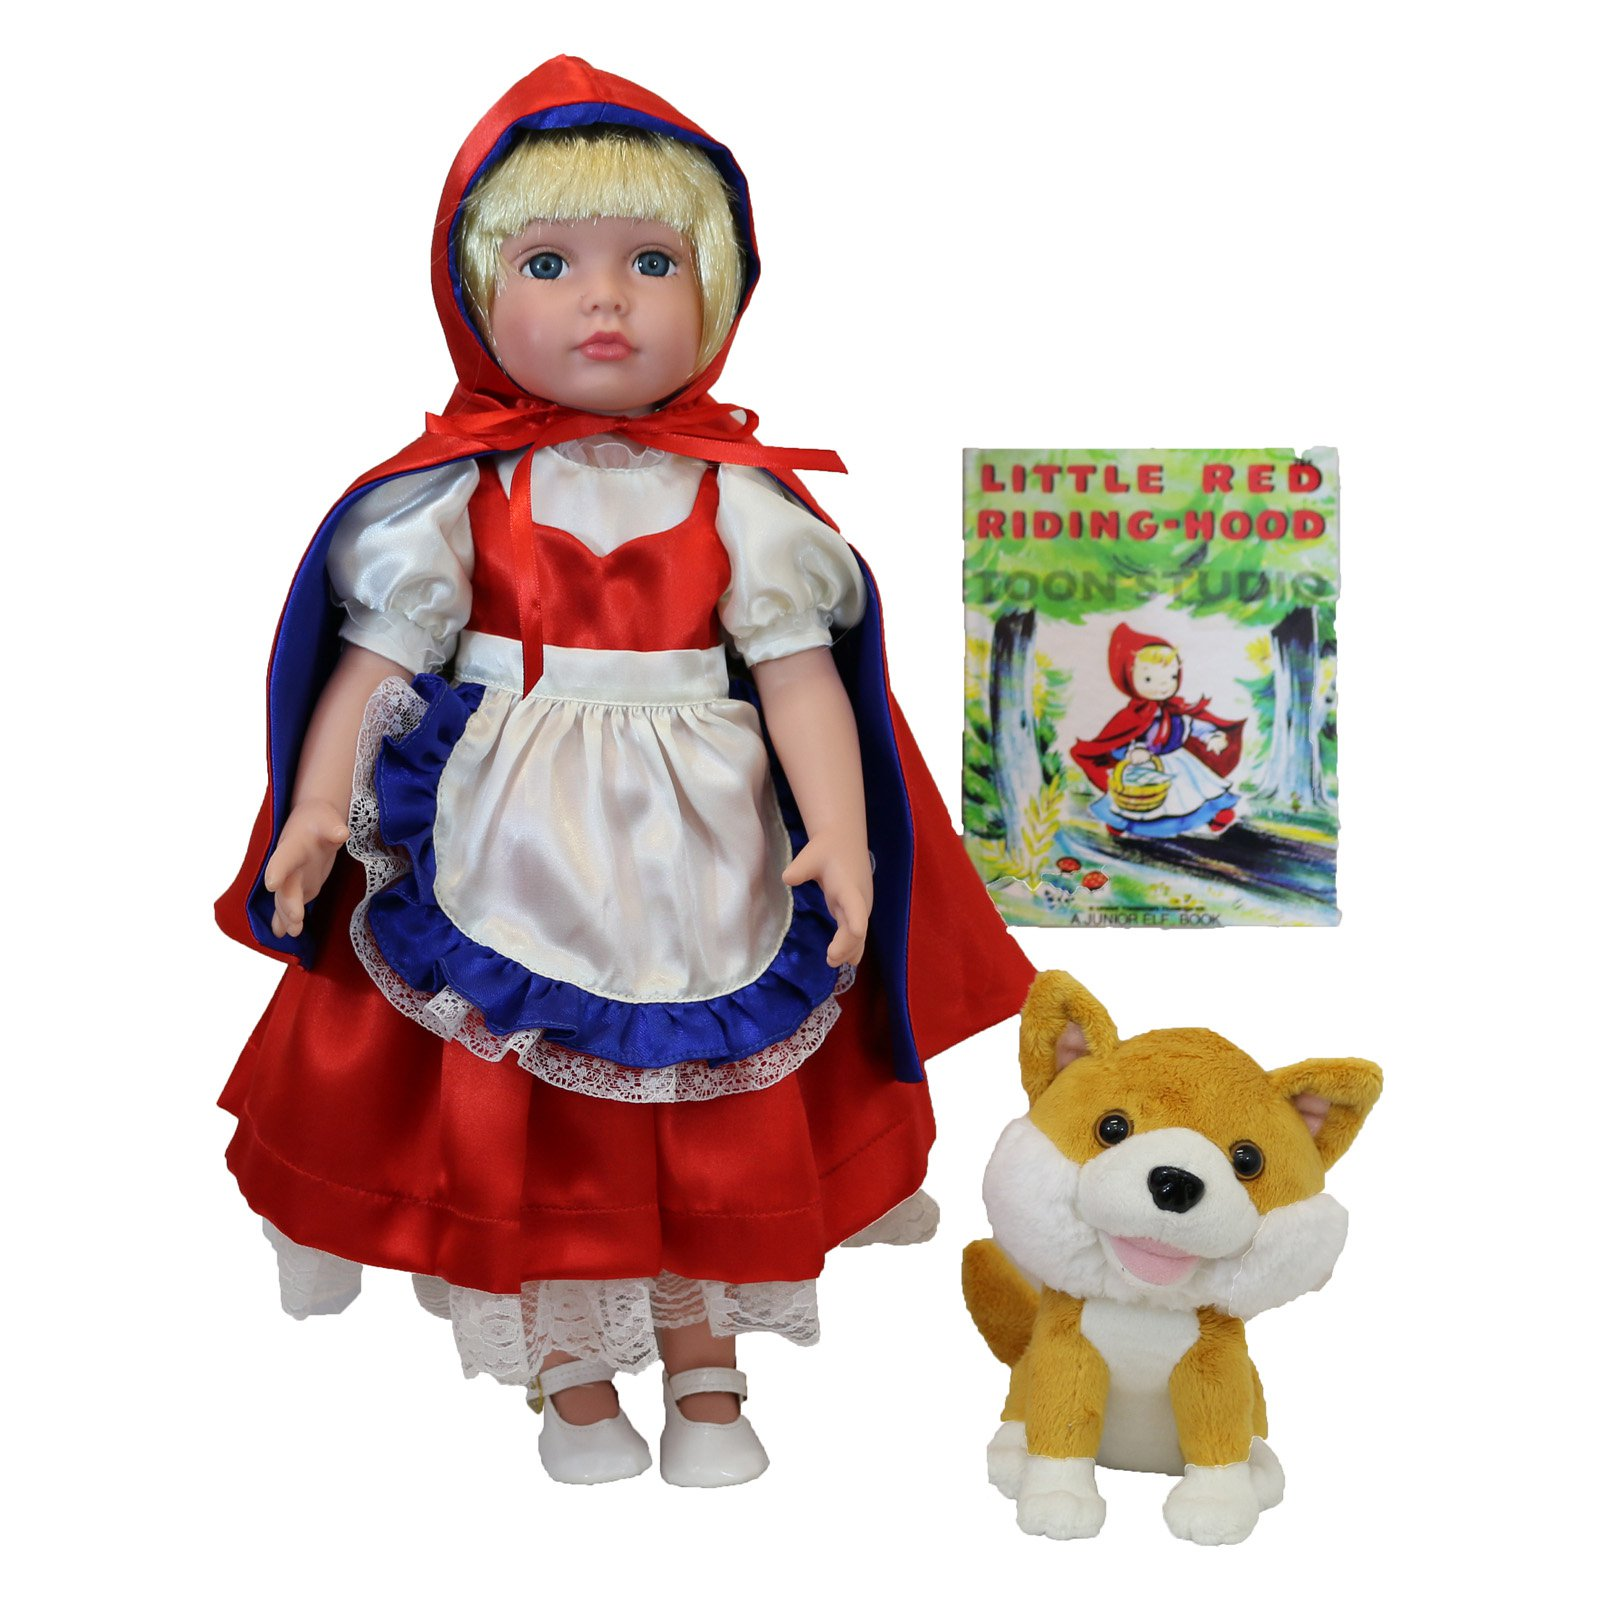 Deluxe Once Upon a time Storybook Doll, Little Red Riding Hood